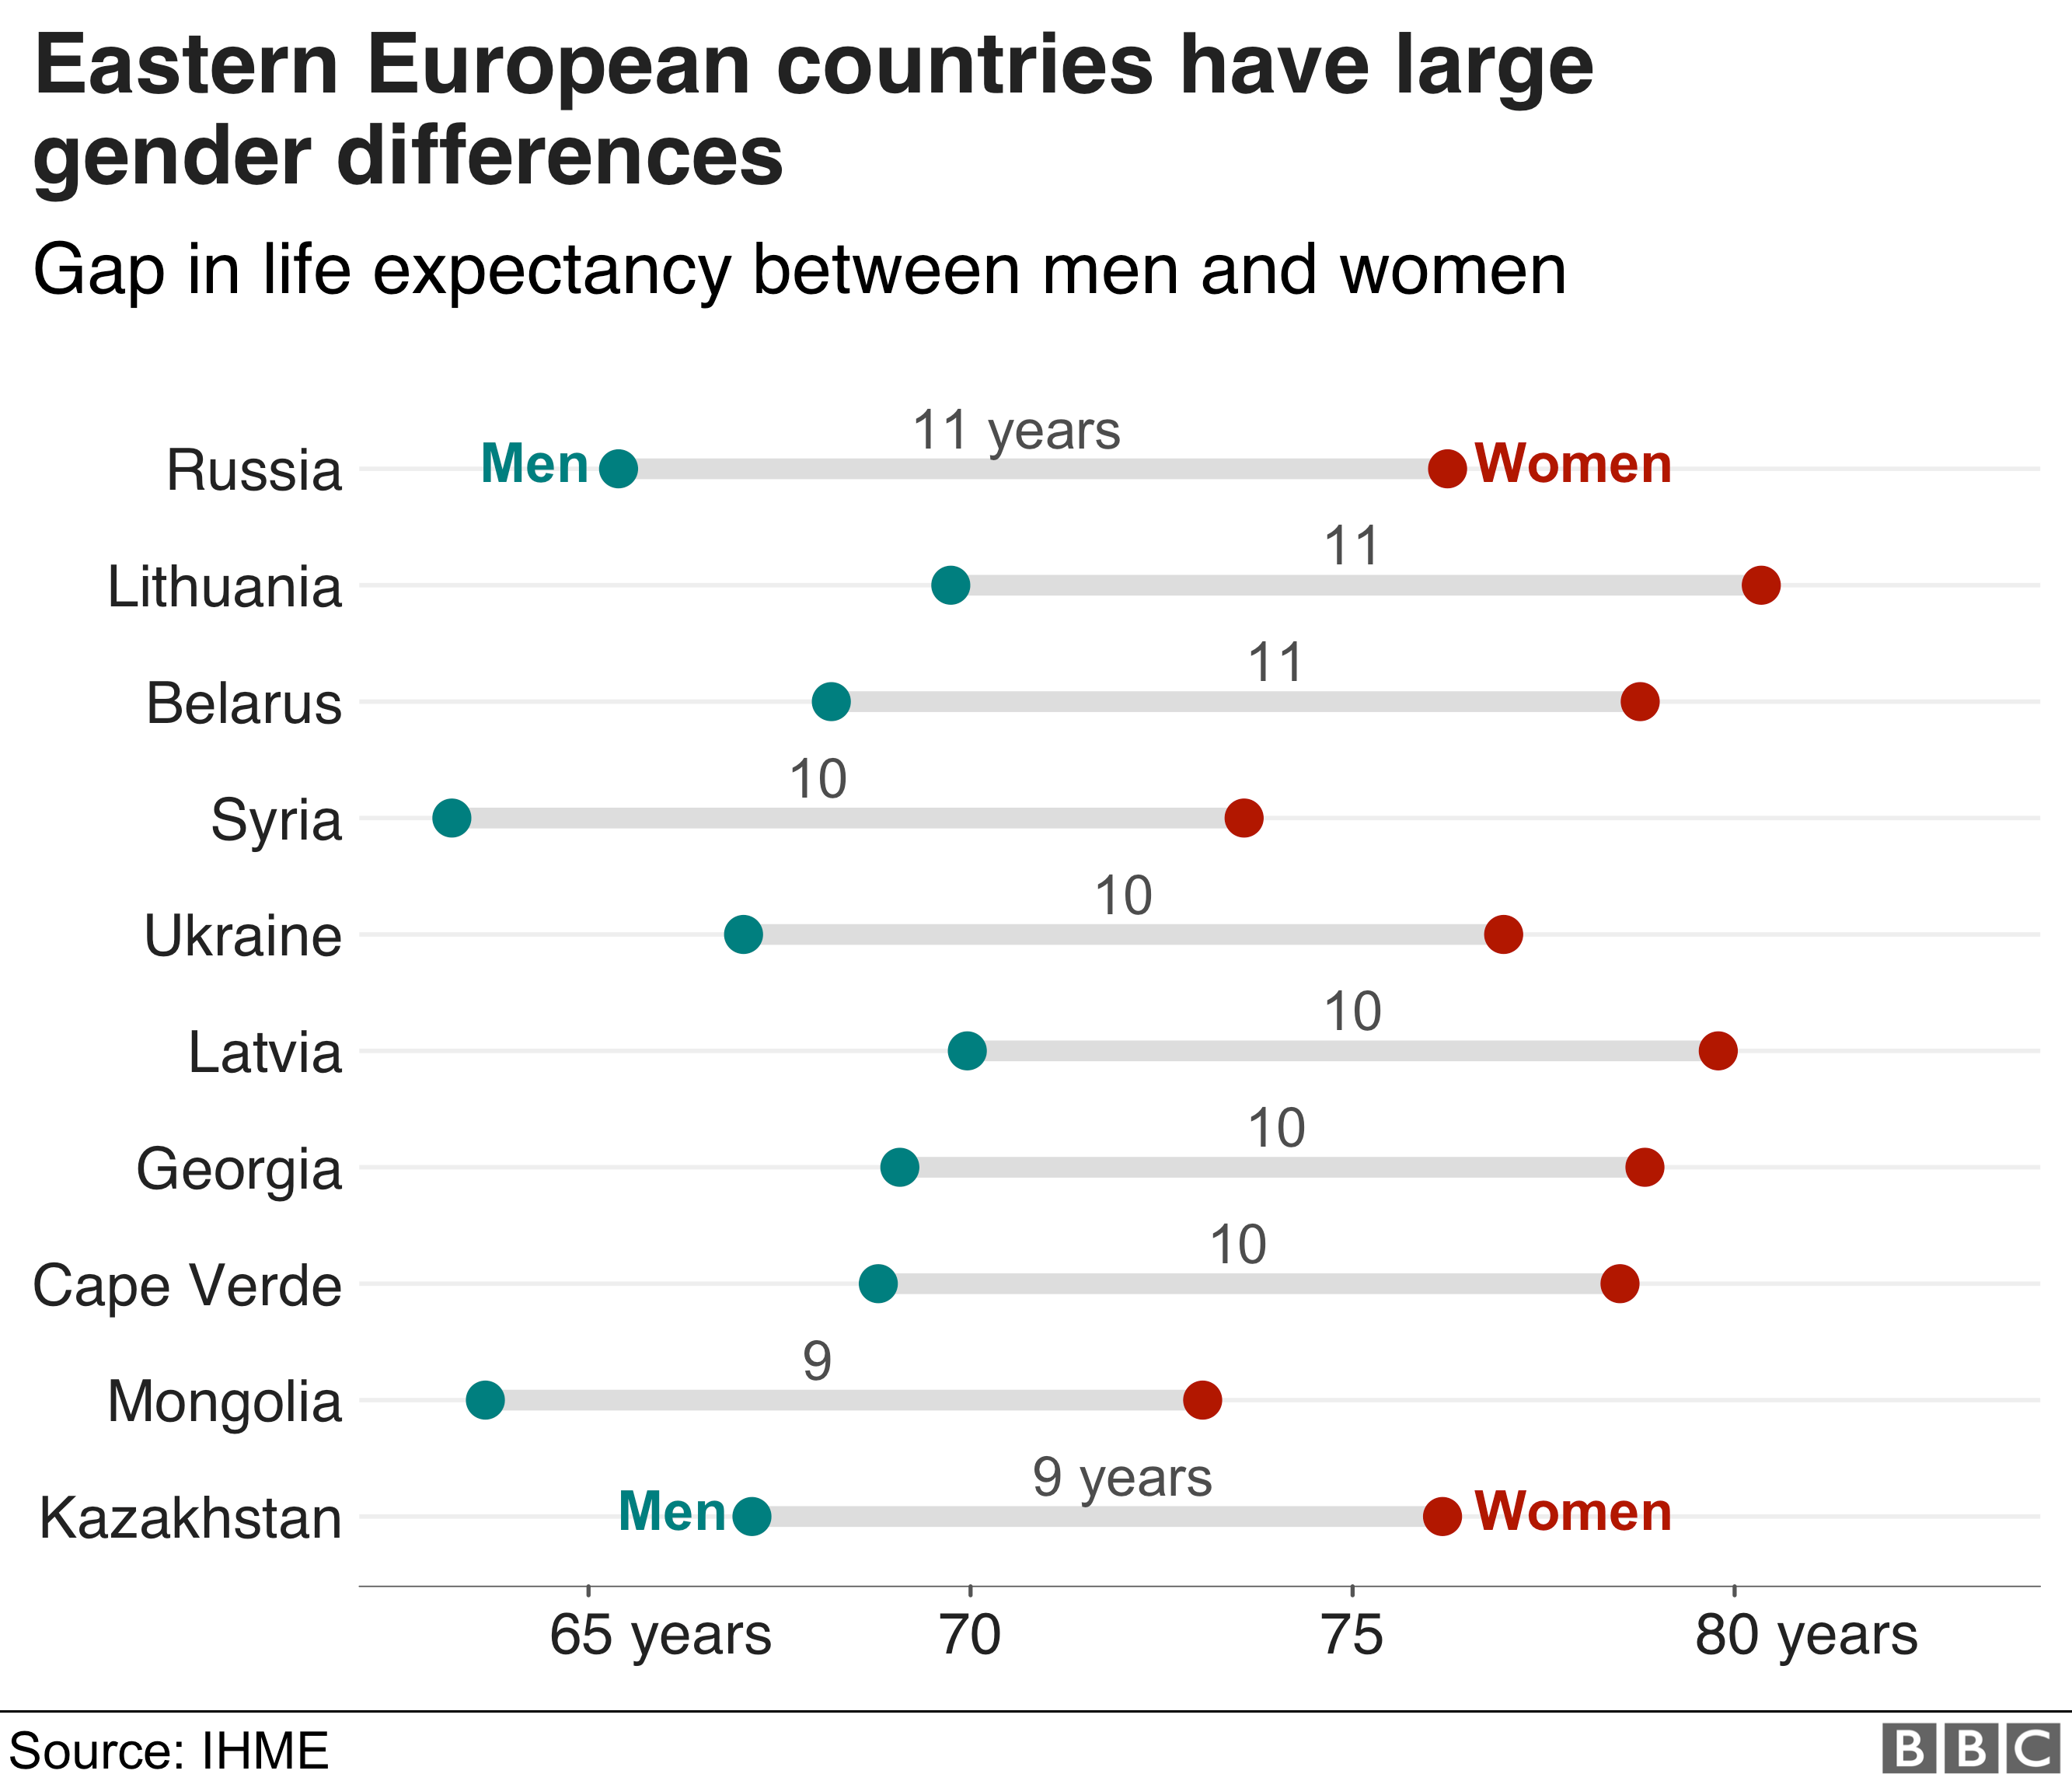 Life expectancy differences between men and women - Russia has the largest as women live 11 years longer than men on average